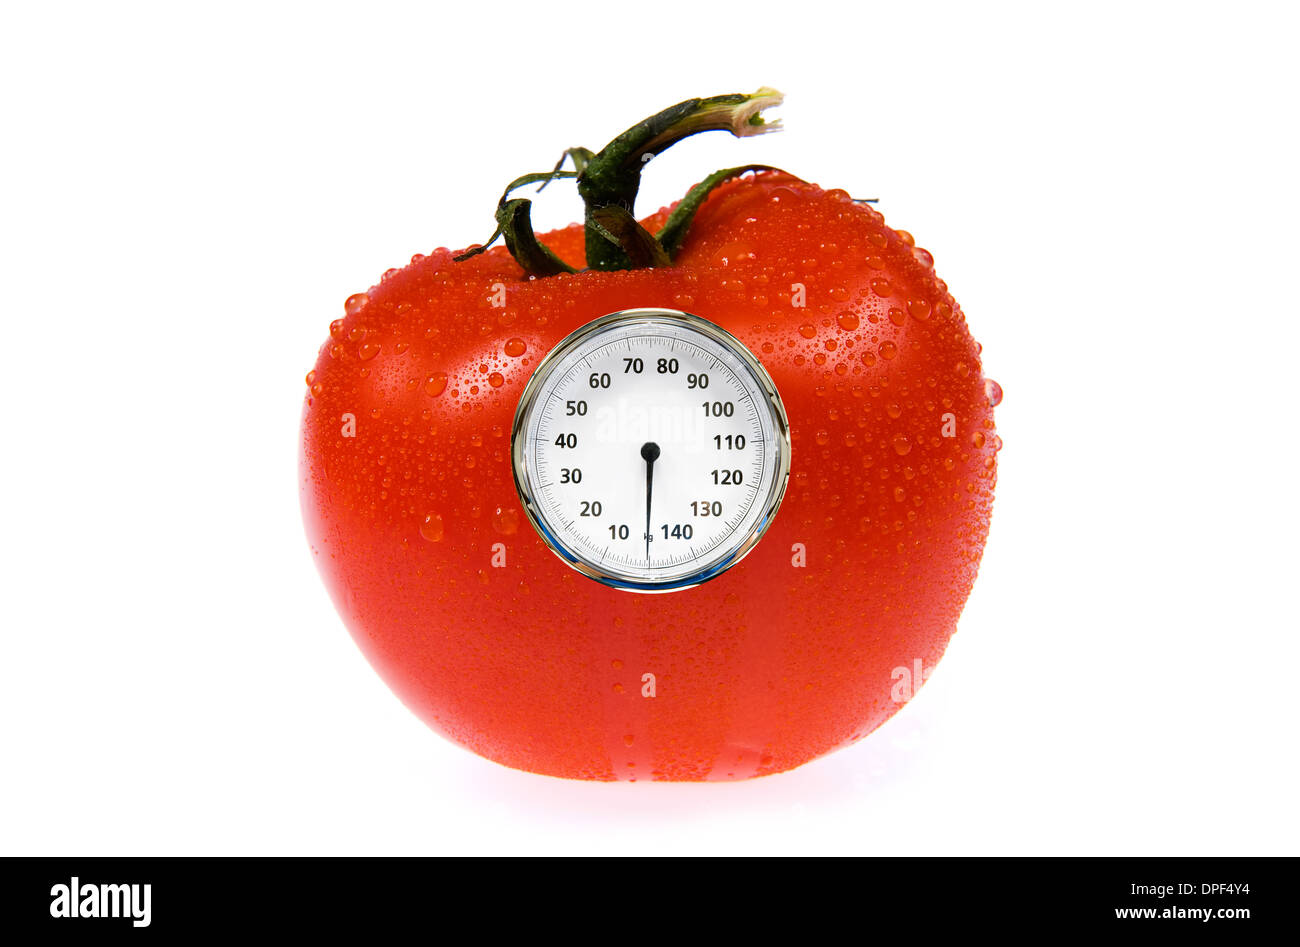 A tomato with a weight scale on it - Stock Image